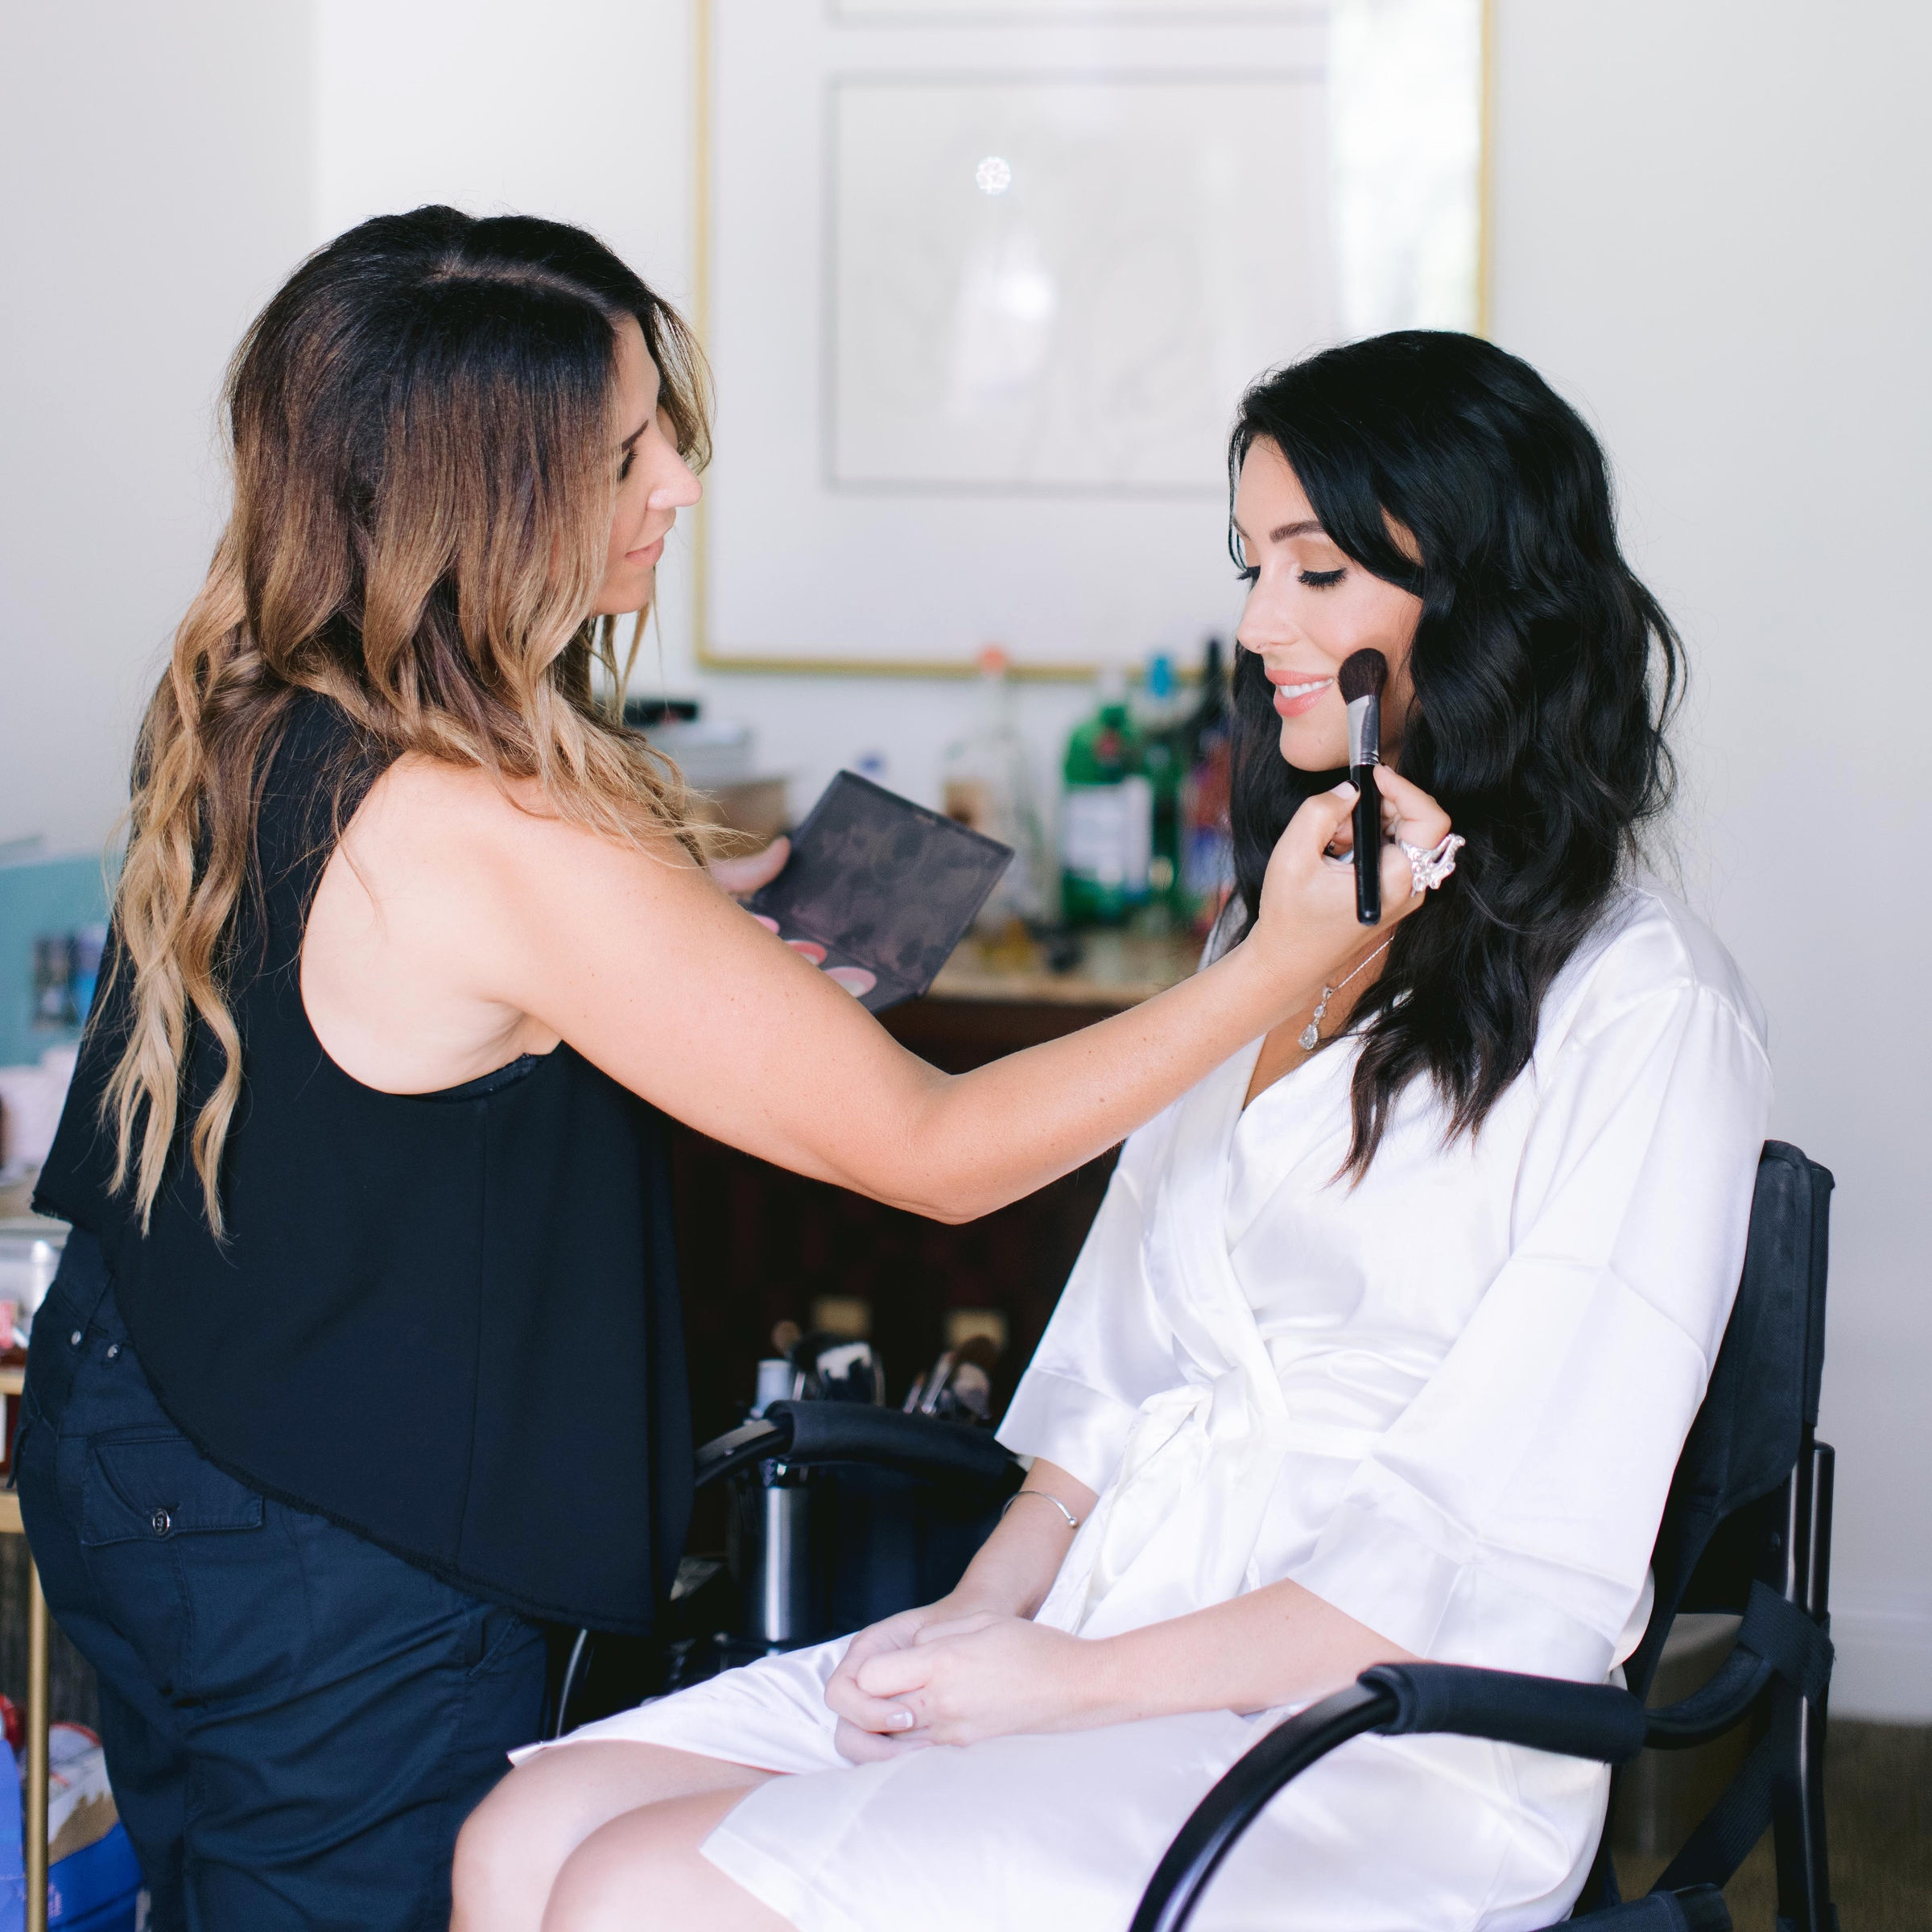 The talented  Tara Dowburd  creating a natural elegant makeup look. All of the ladies, including myself had our hair styled by an incredible team from  Benjamin Salon .